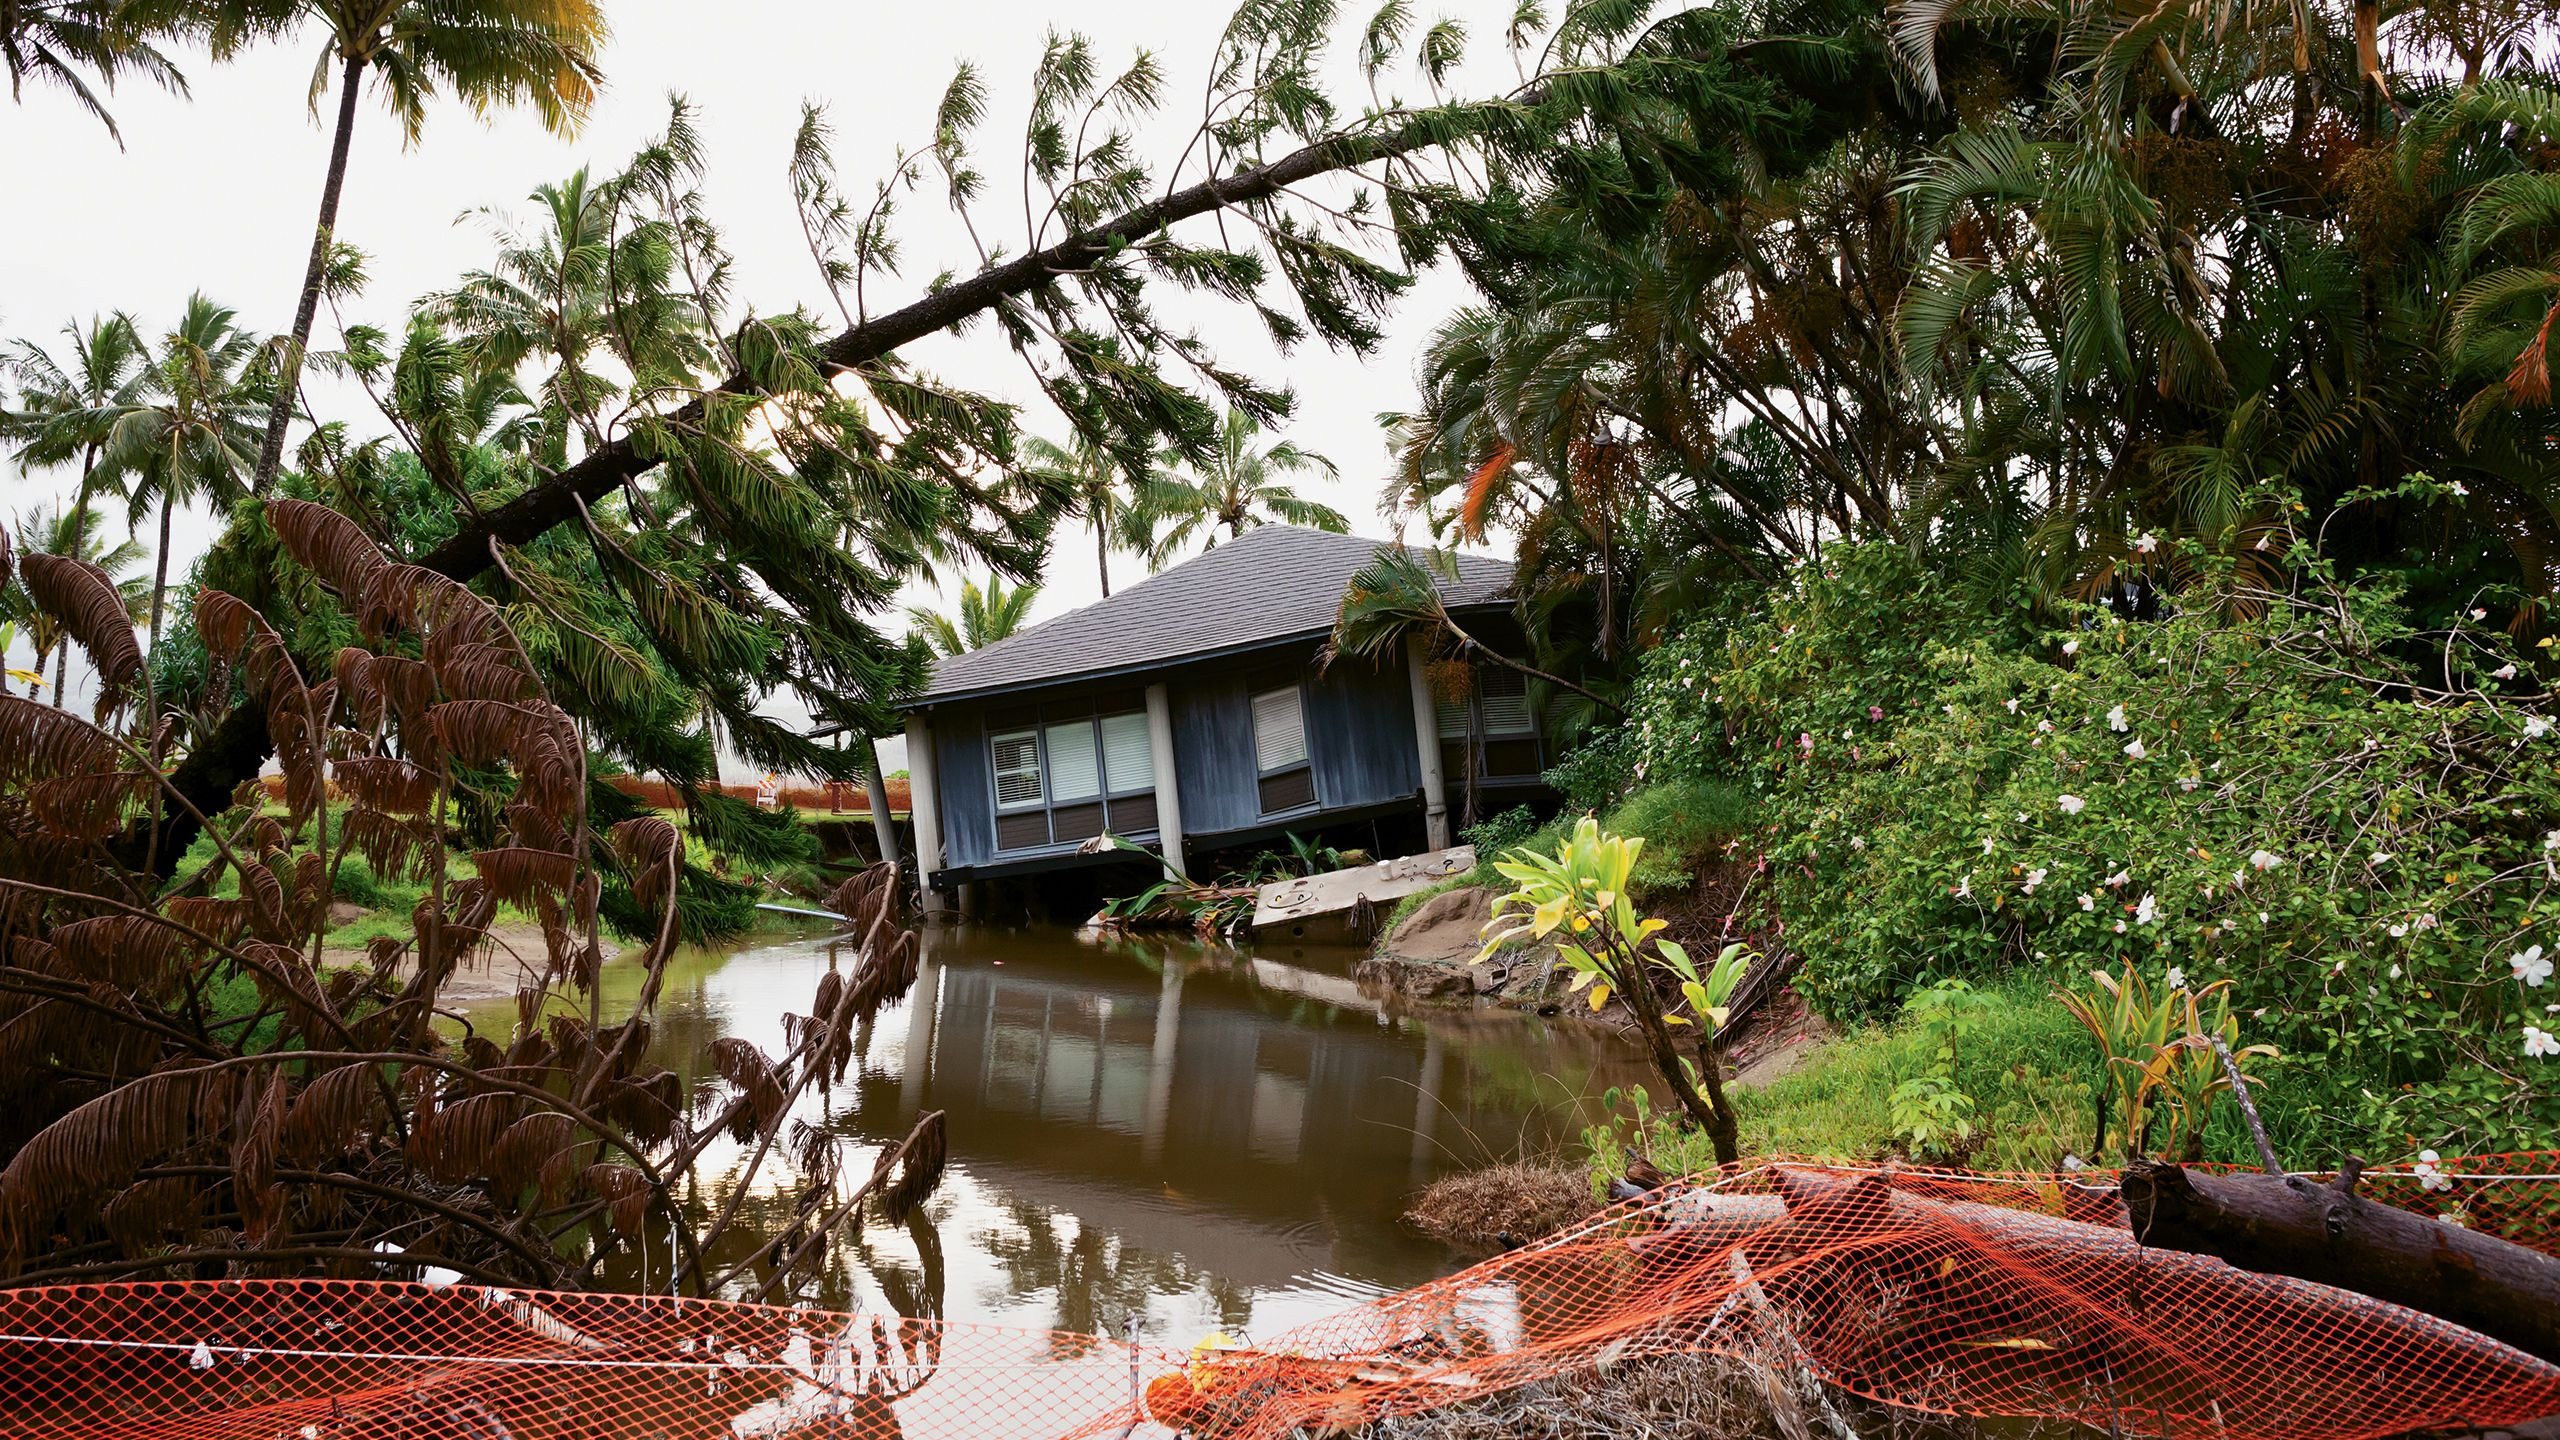 A flood-damaged house in Hanalei. The disaster gave locals the chance to address overcrowding. Photo by Mayakova/Shutterstock.com